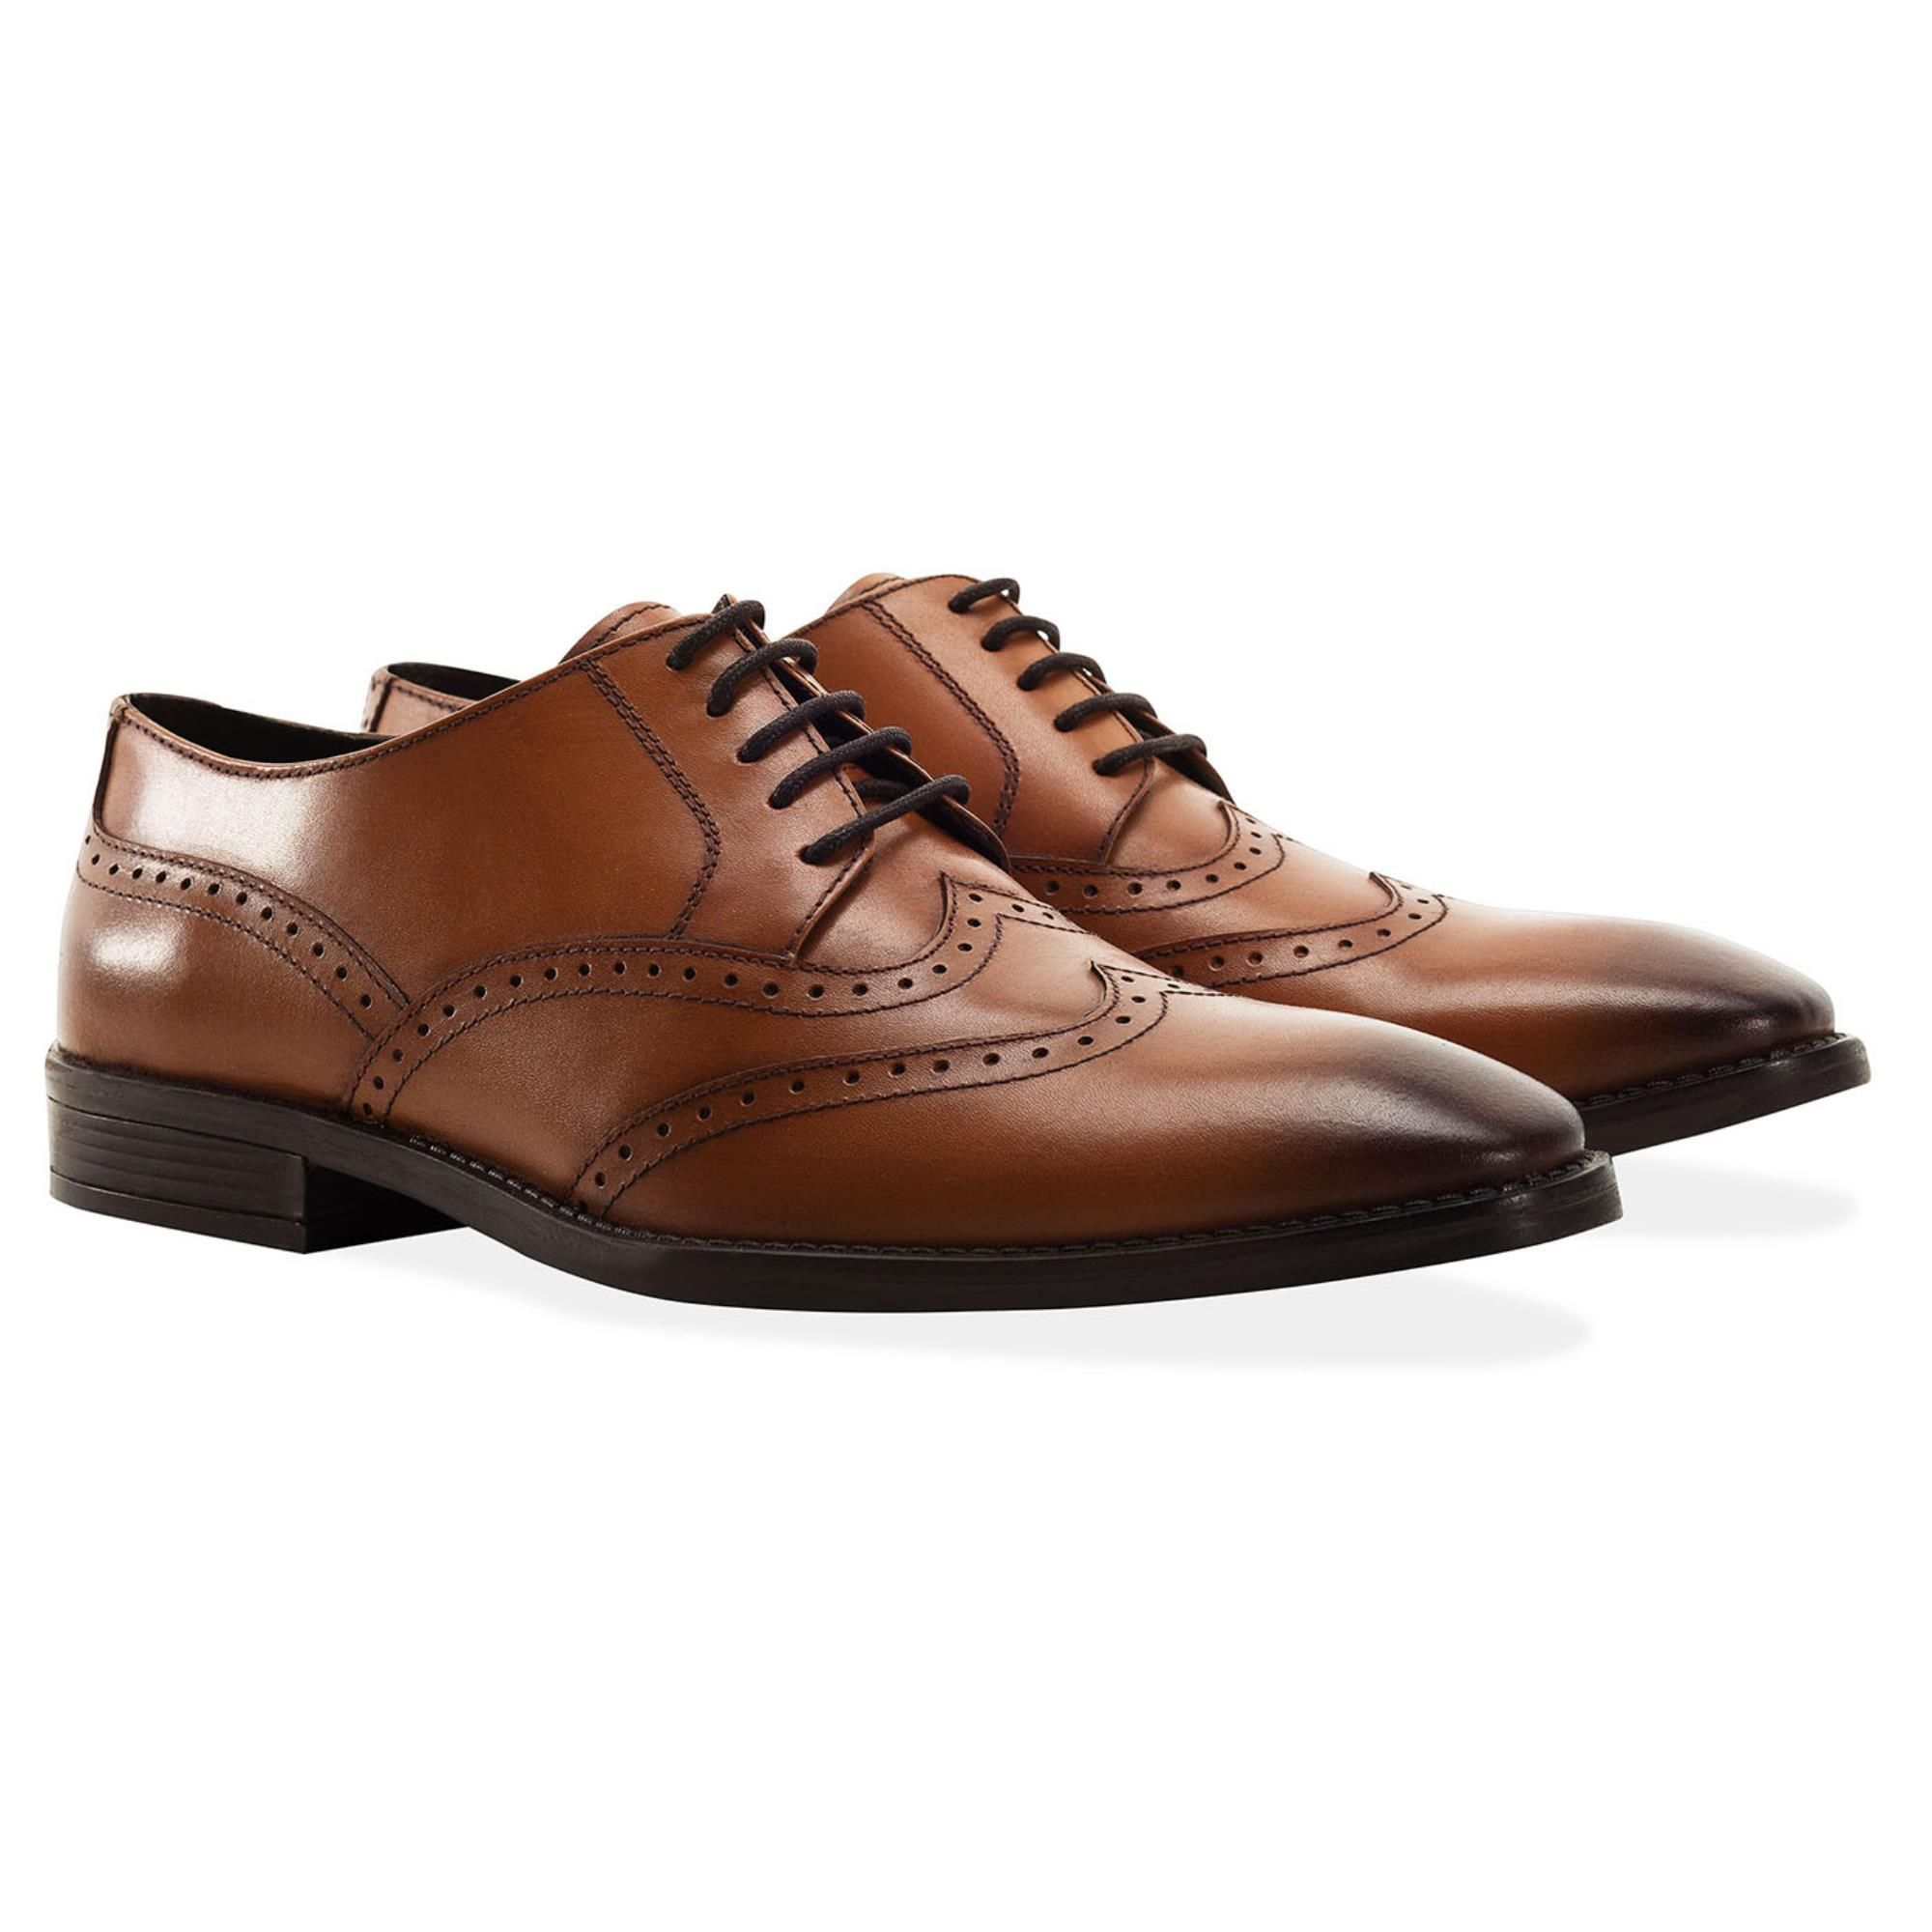 Redfoot Arthur Tan Leather Derby Shoe